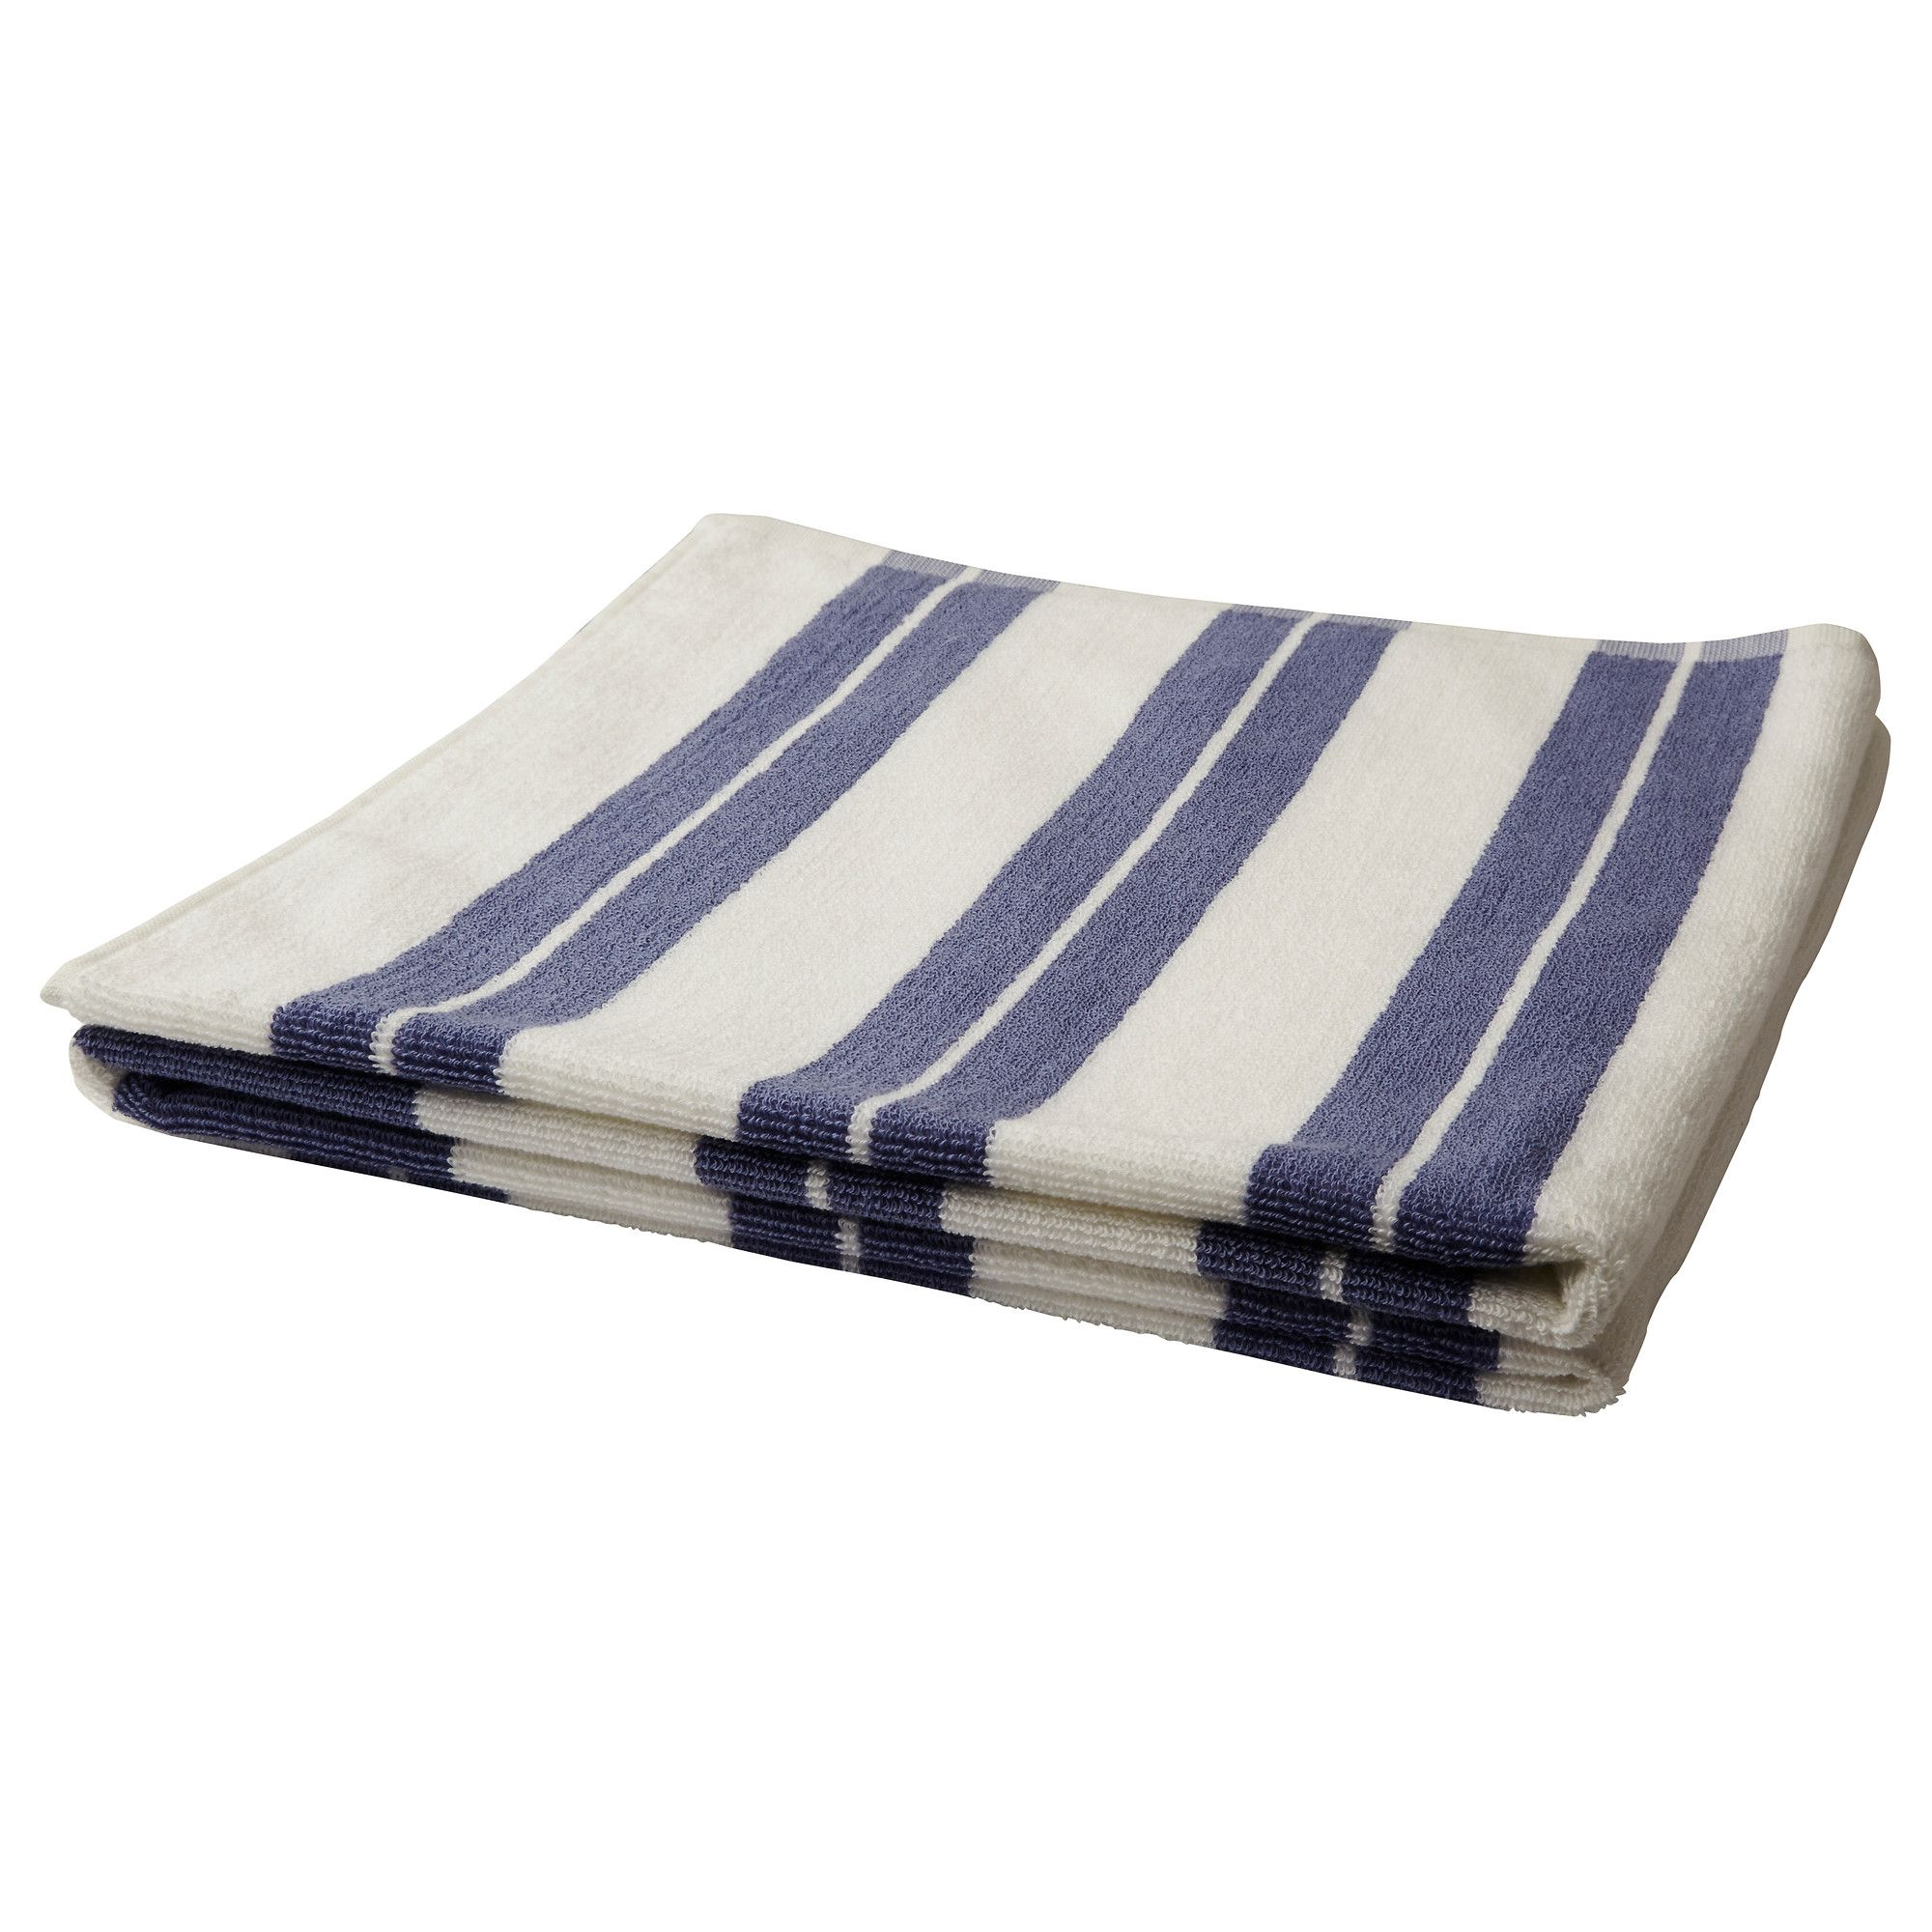 Kalvsj n bath towel 70x140 cm ikea 8 pounds each for Ikea beach towels